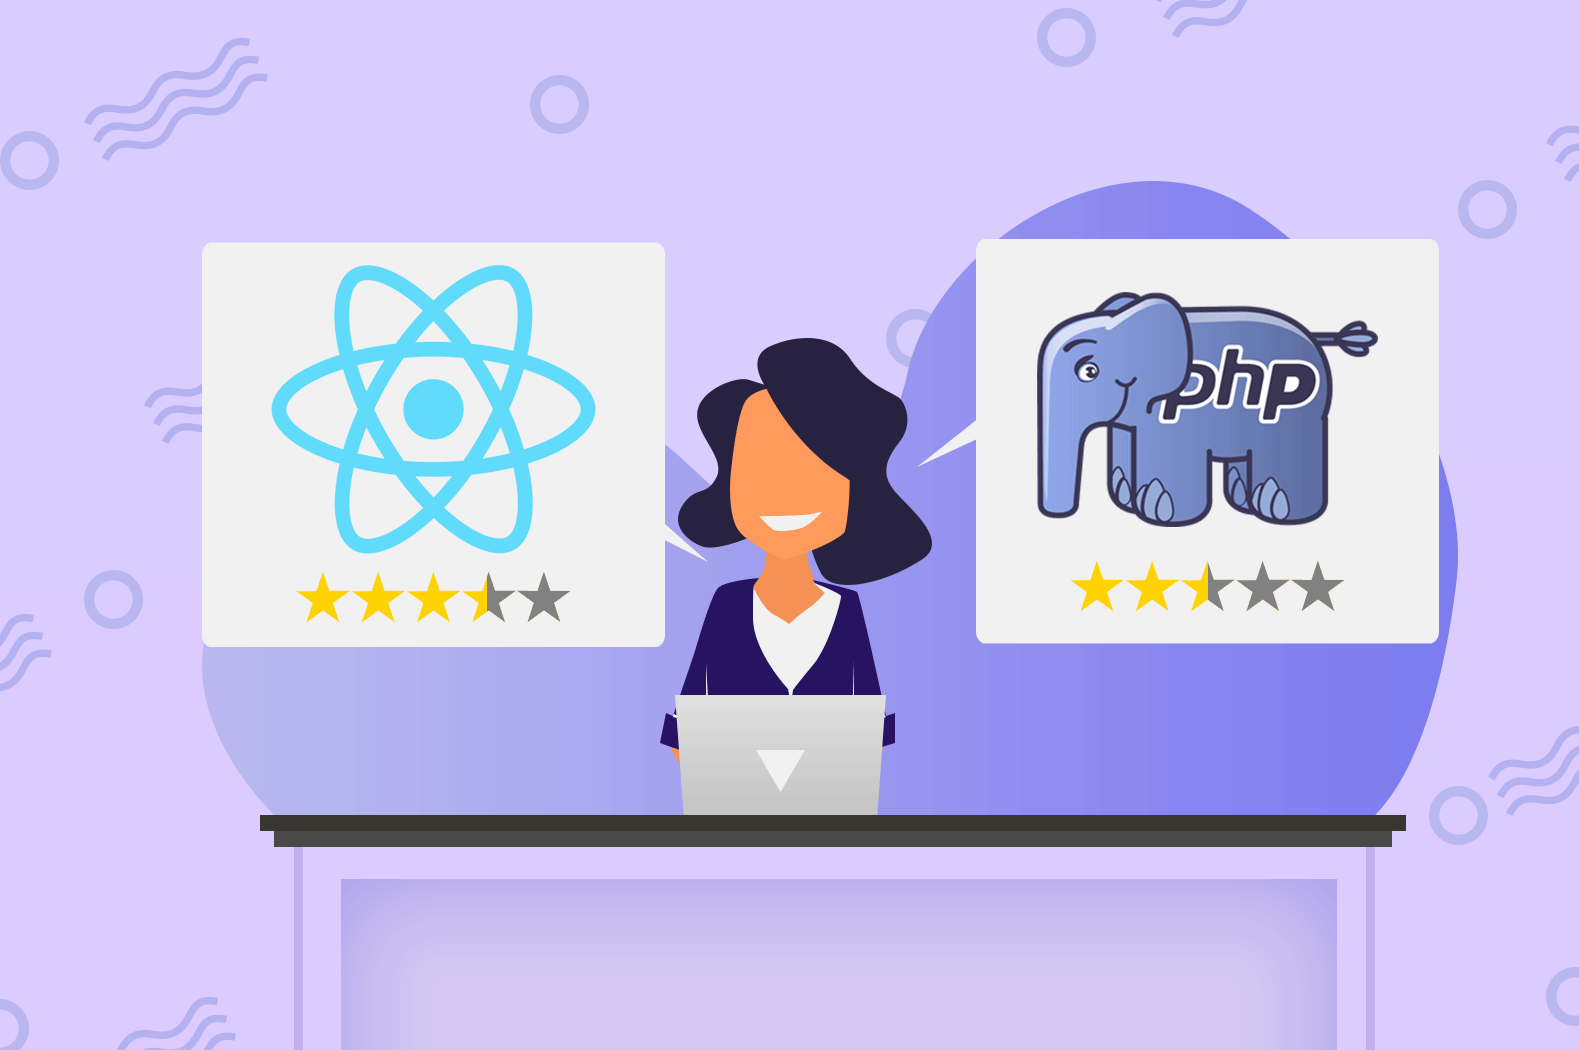 React vs. PHP: Which One Is The Best For Shopify App Development?